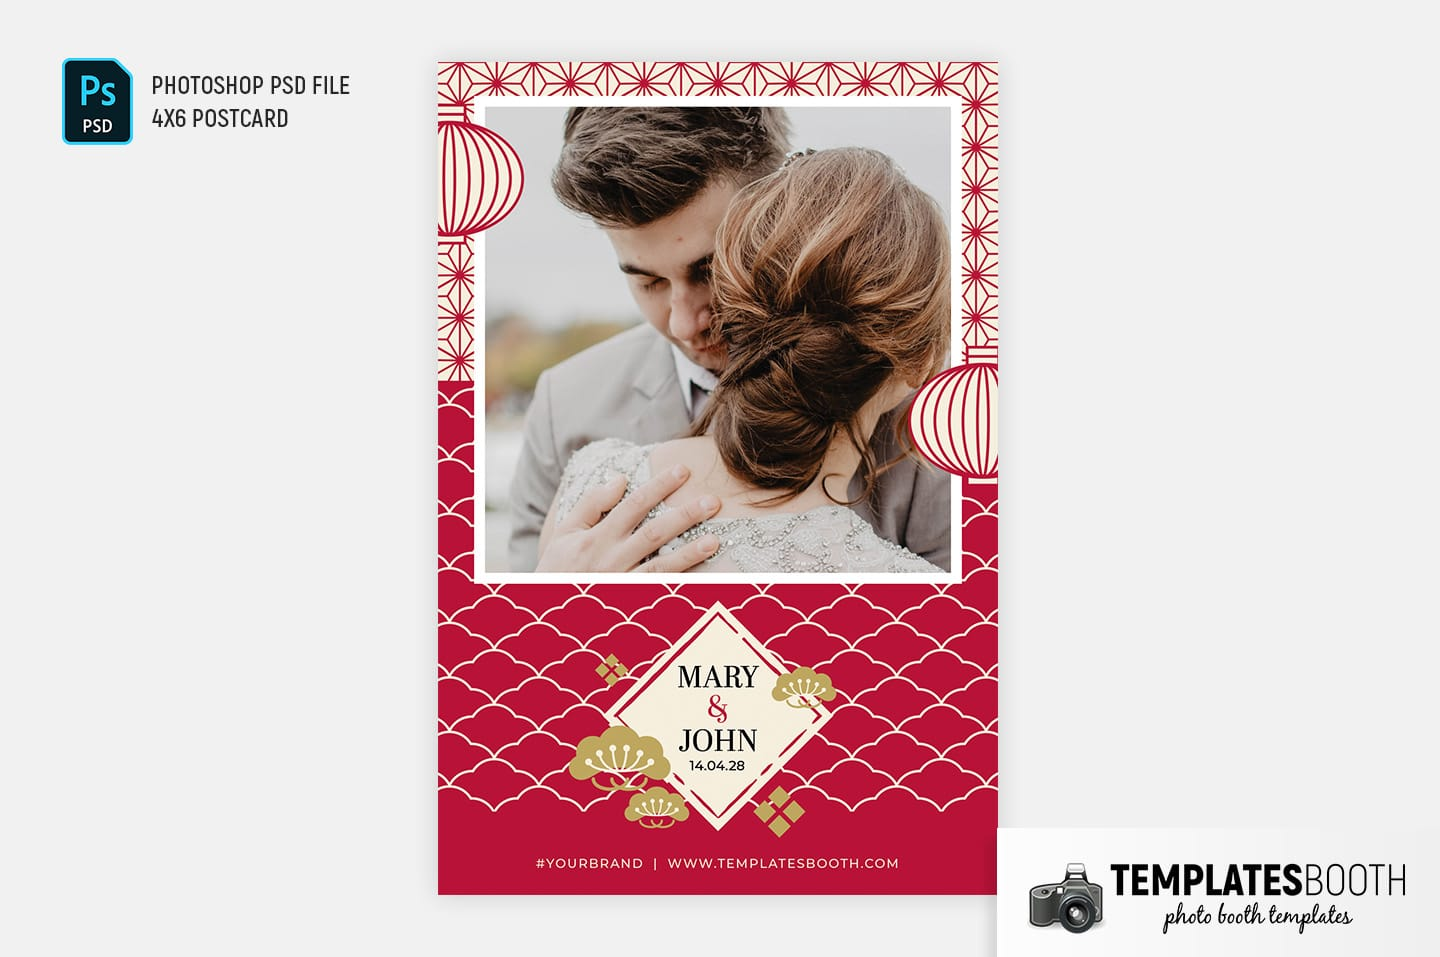 Chinese Wedding Photo Booth Template (4x6 postcard portrait)